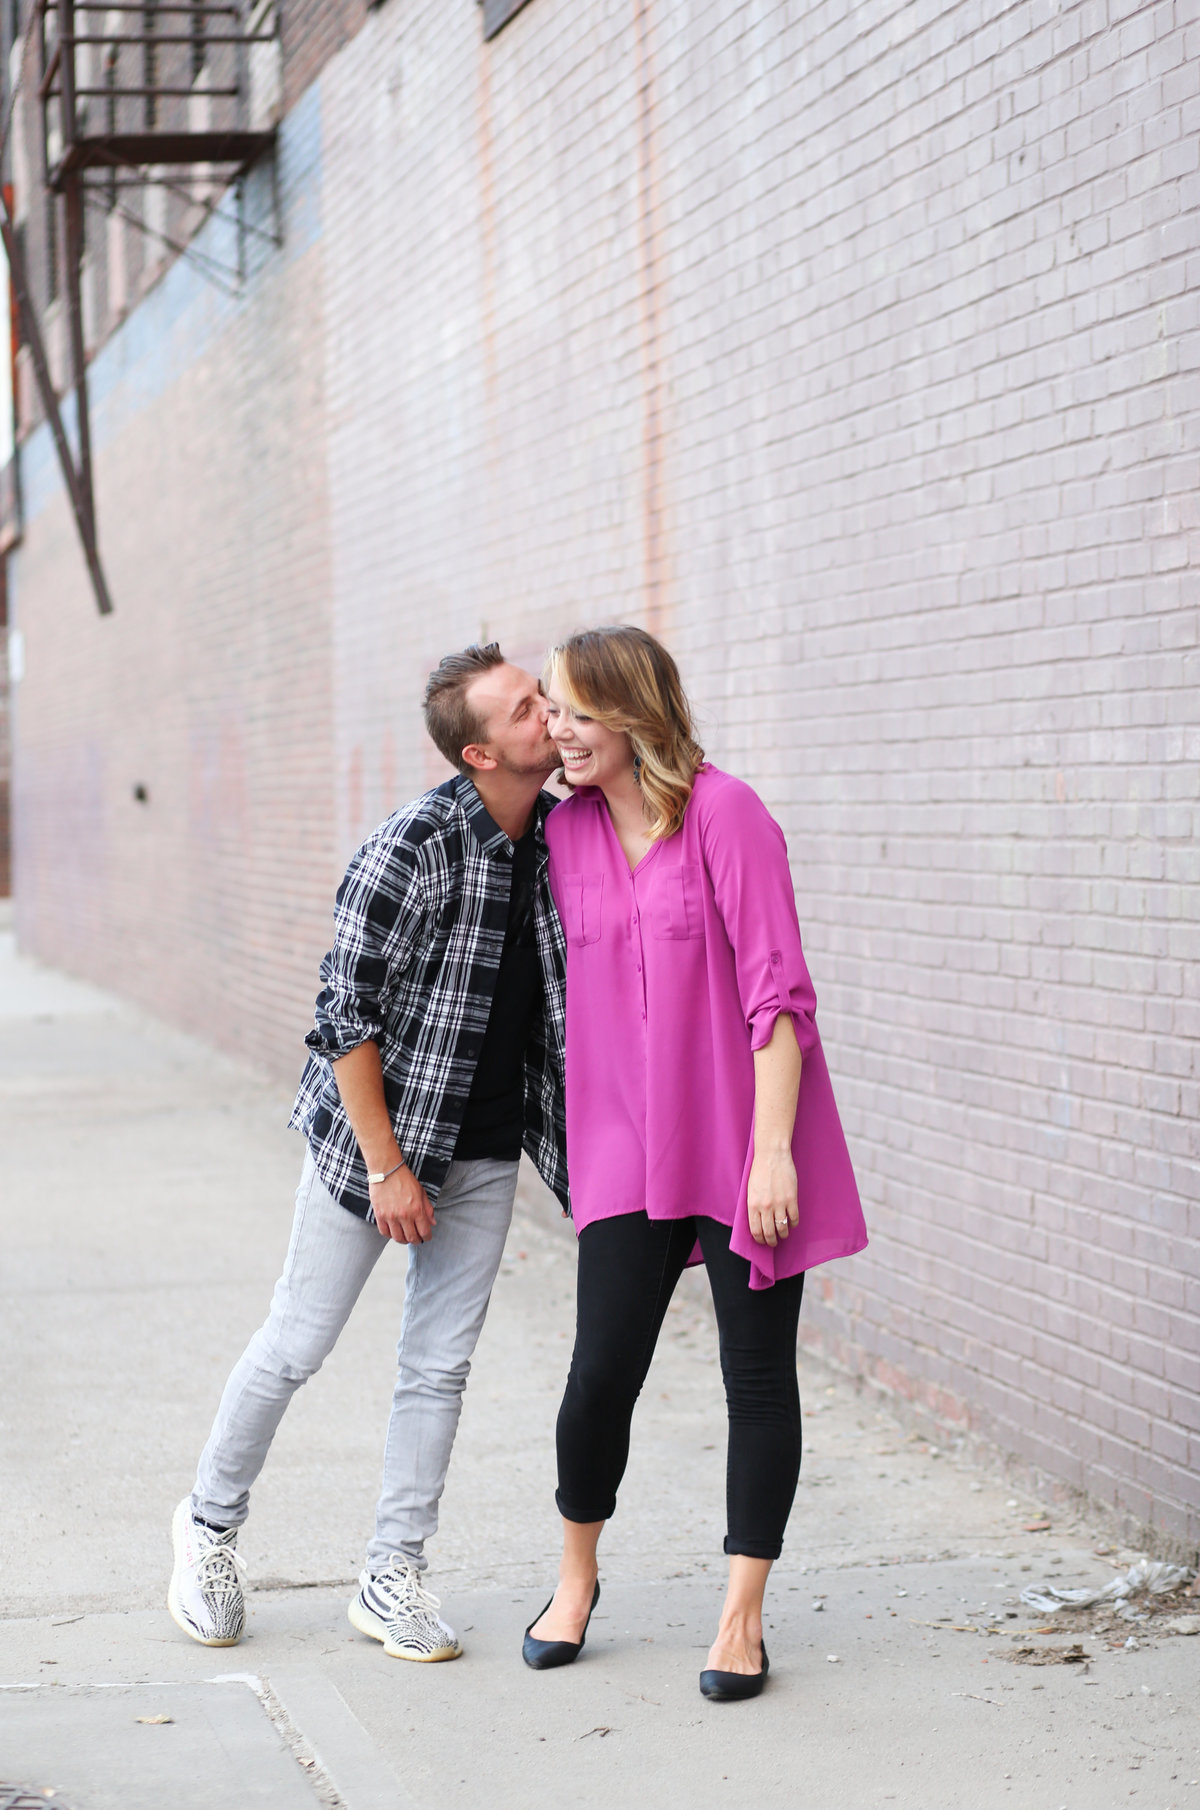 Love Kansas CIty West Bottoms Engagement Kansas City Overland Park Engagement Photographer - E Session - Engagement - Engaged - Engagement Ring